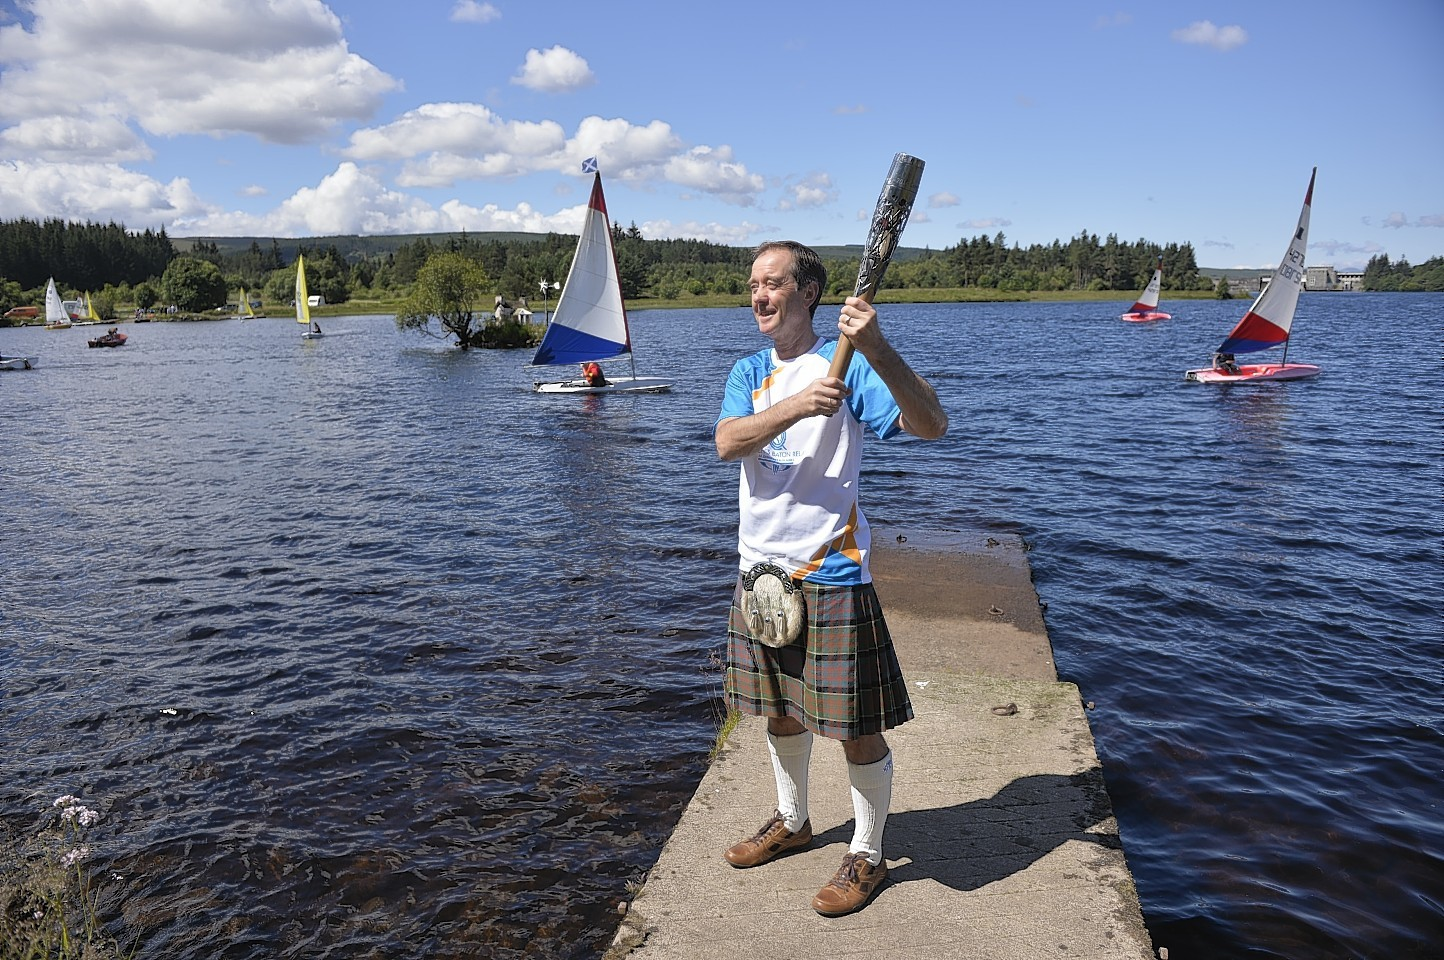 Thomas Mathieson carrying the Glasgow 2014 Queen's Baton through Lairg in the Scottish Highlands.